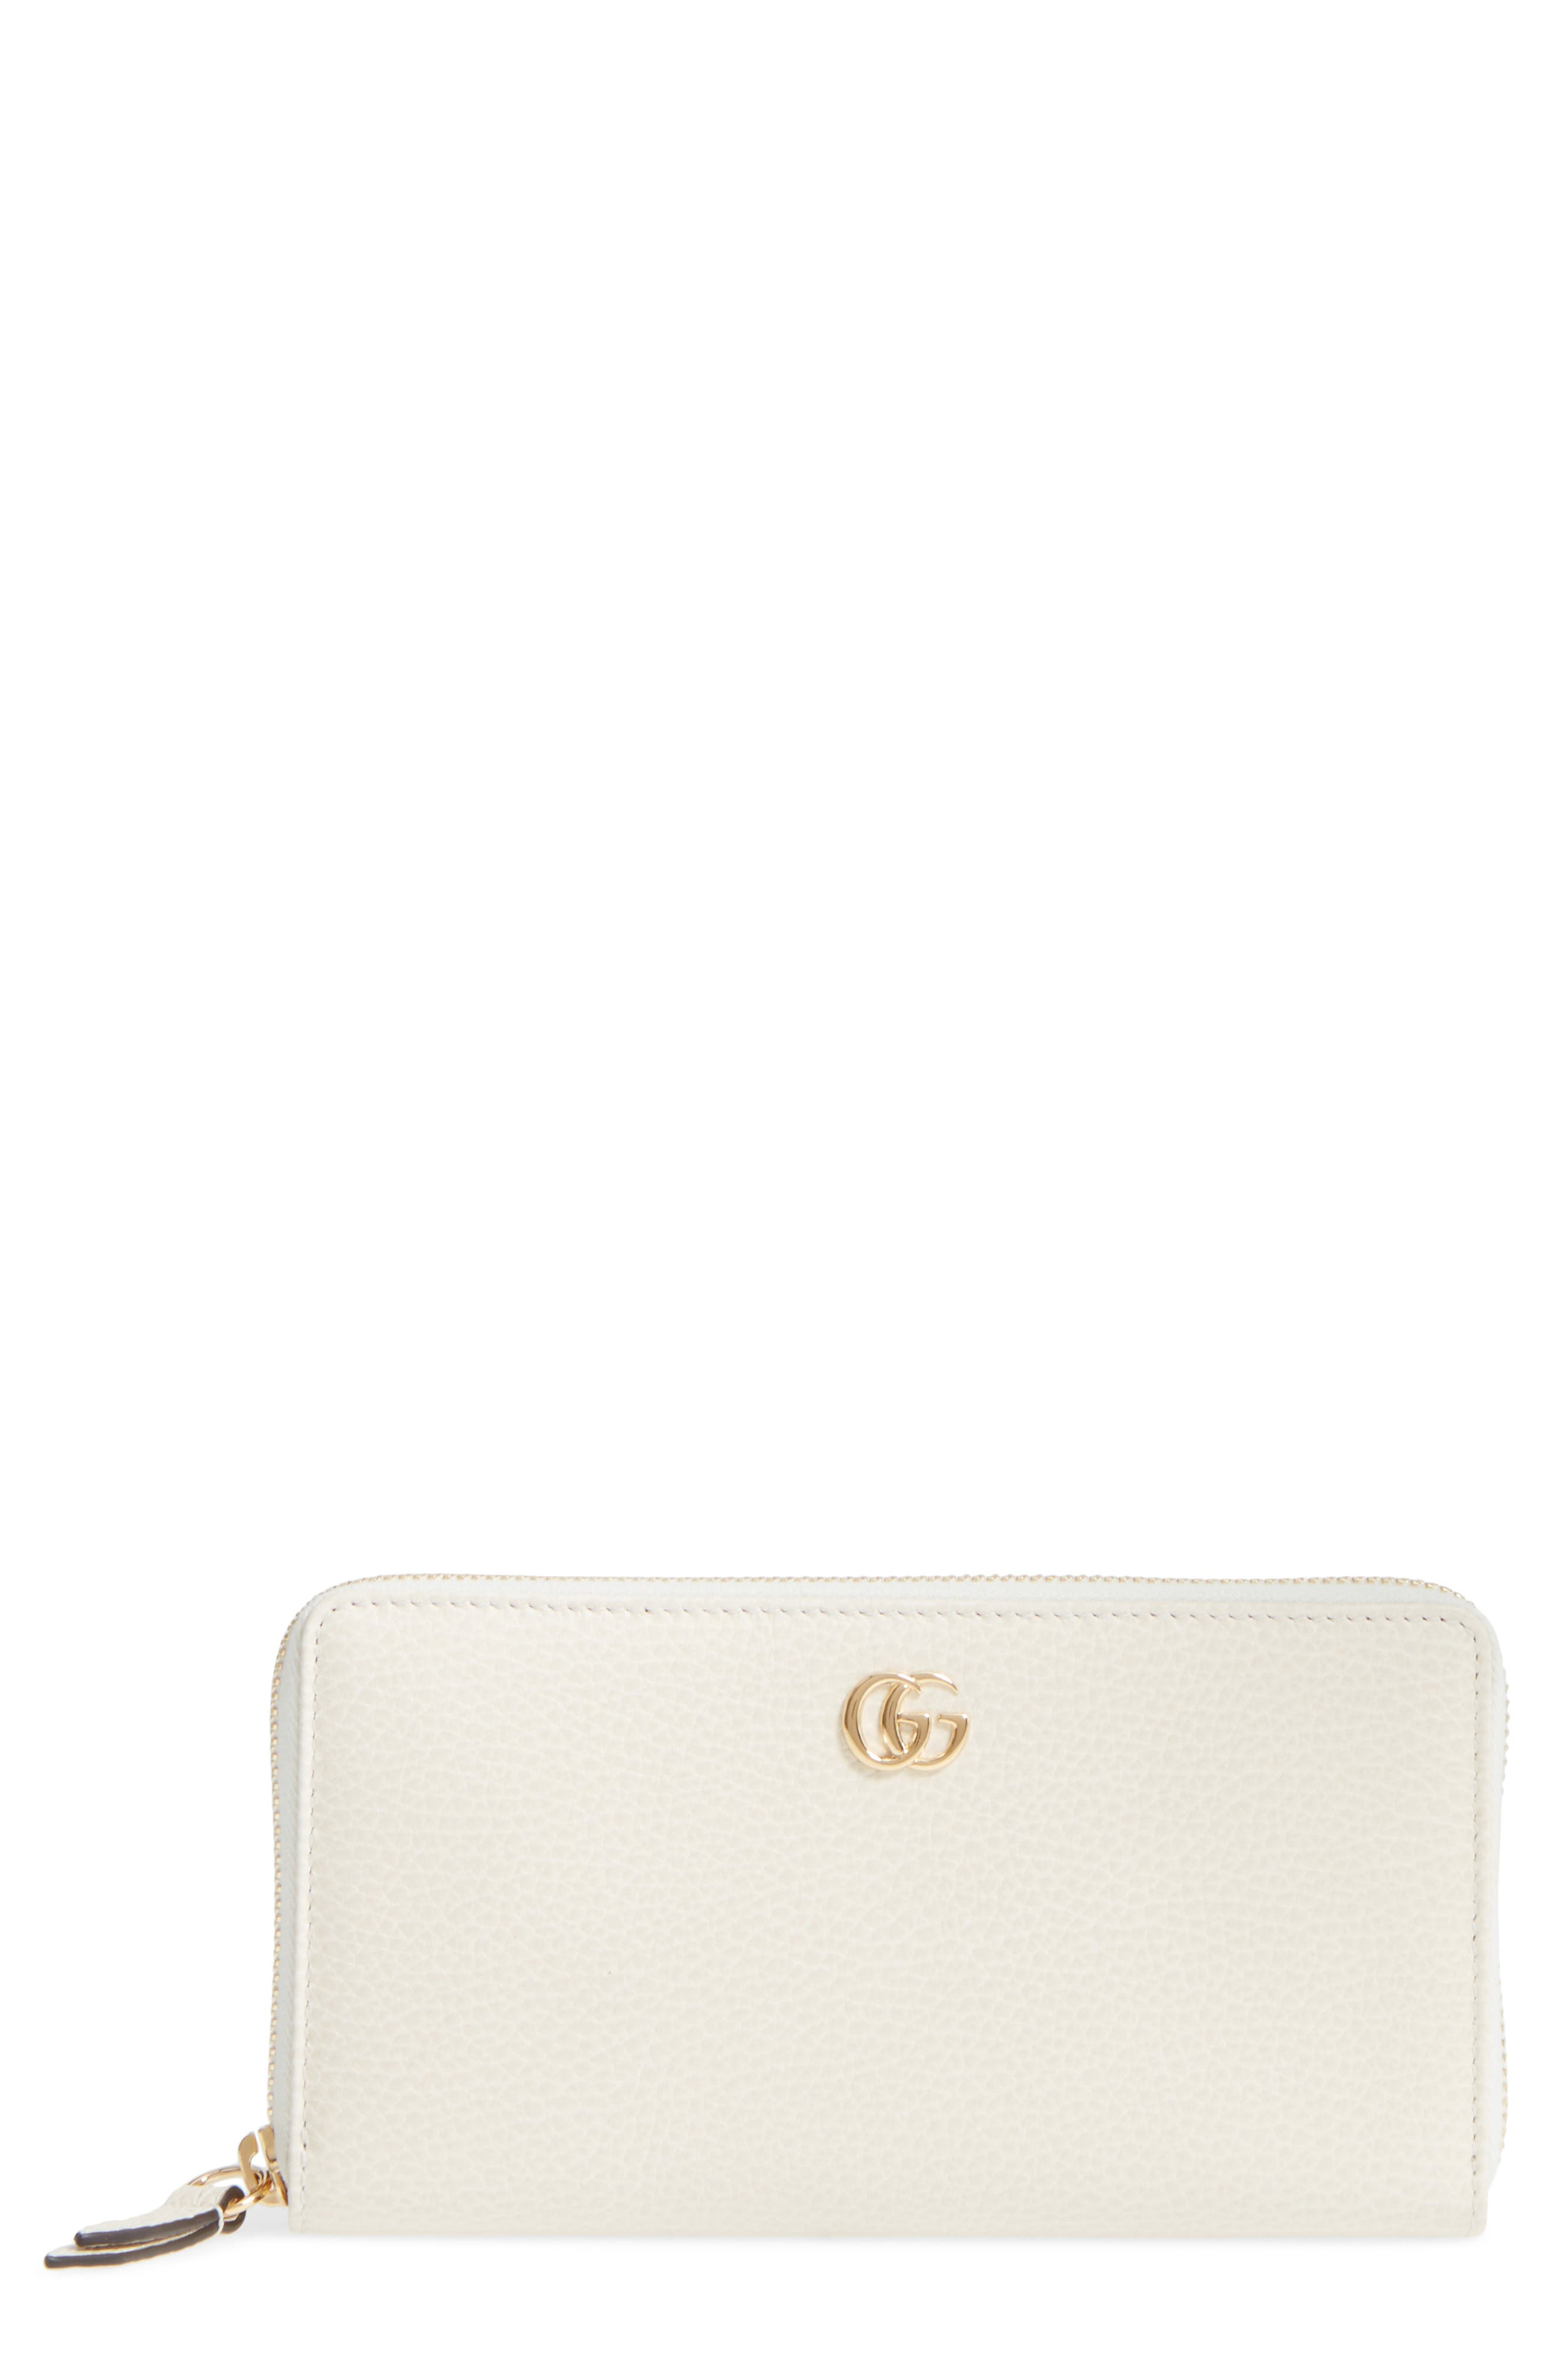 Petite Marmont Leather Zip Around Wallet,                         Main,                         color, MYSTIC WHITE